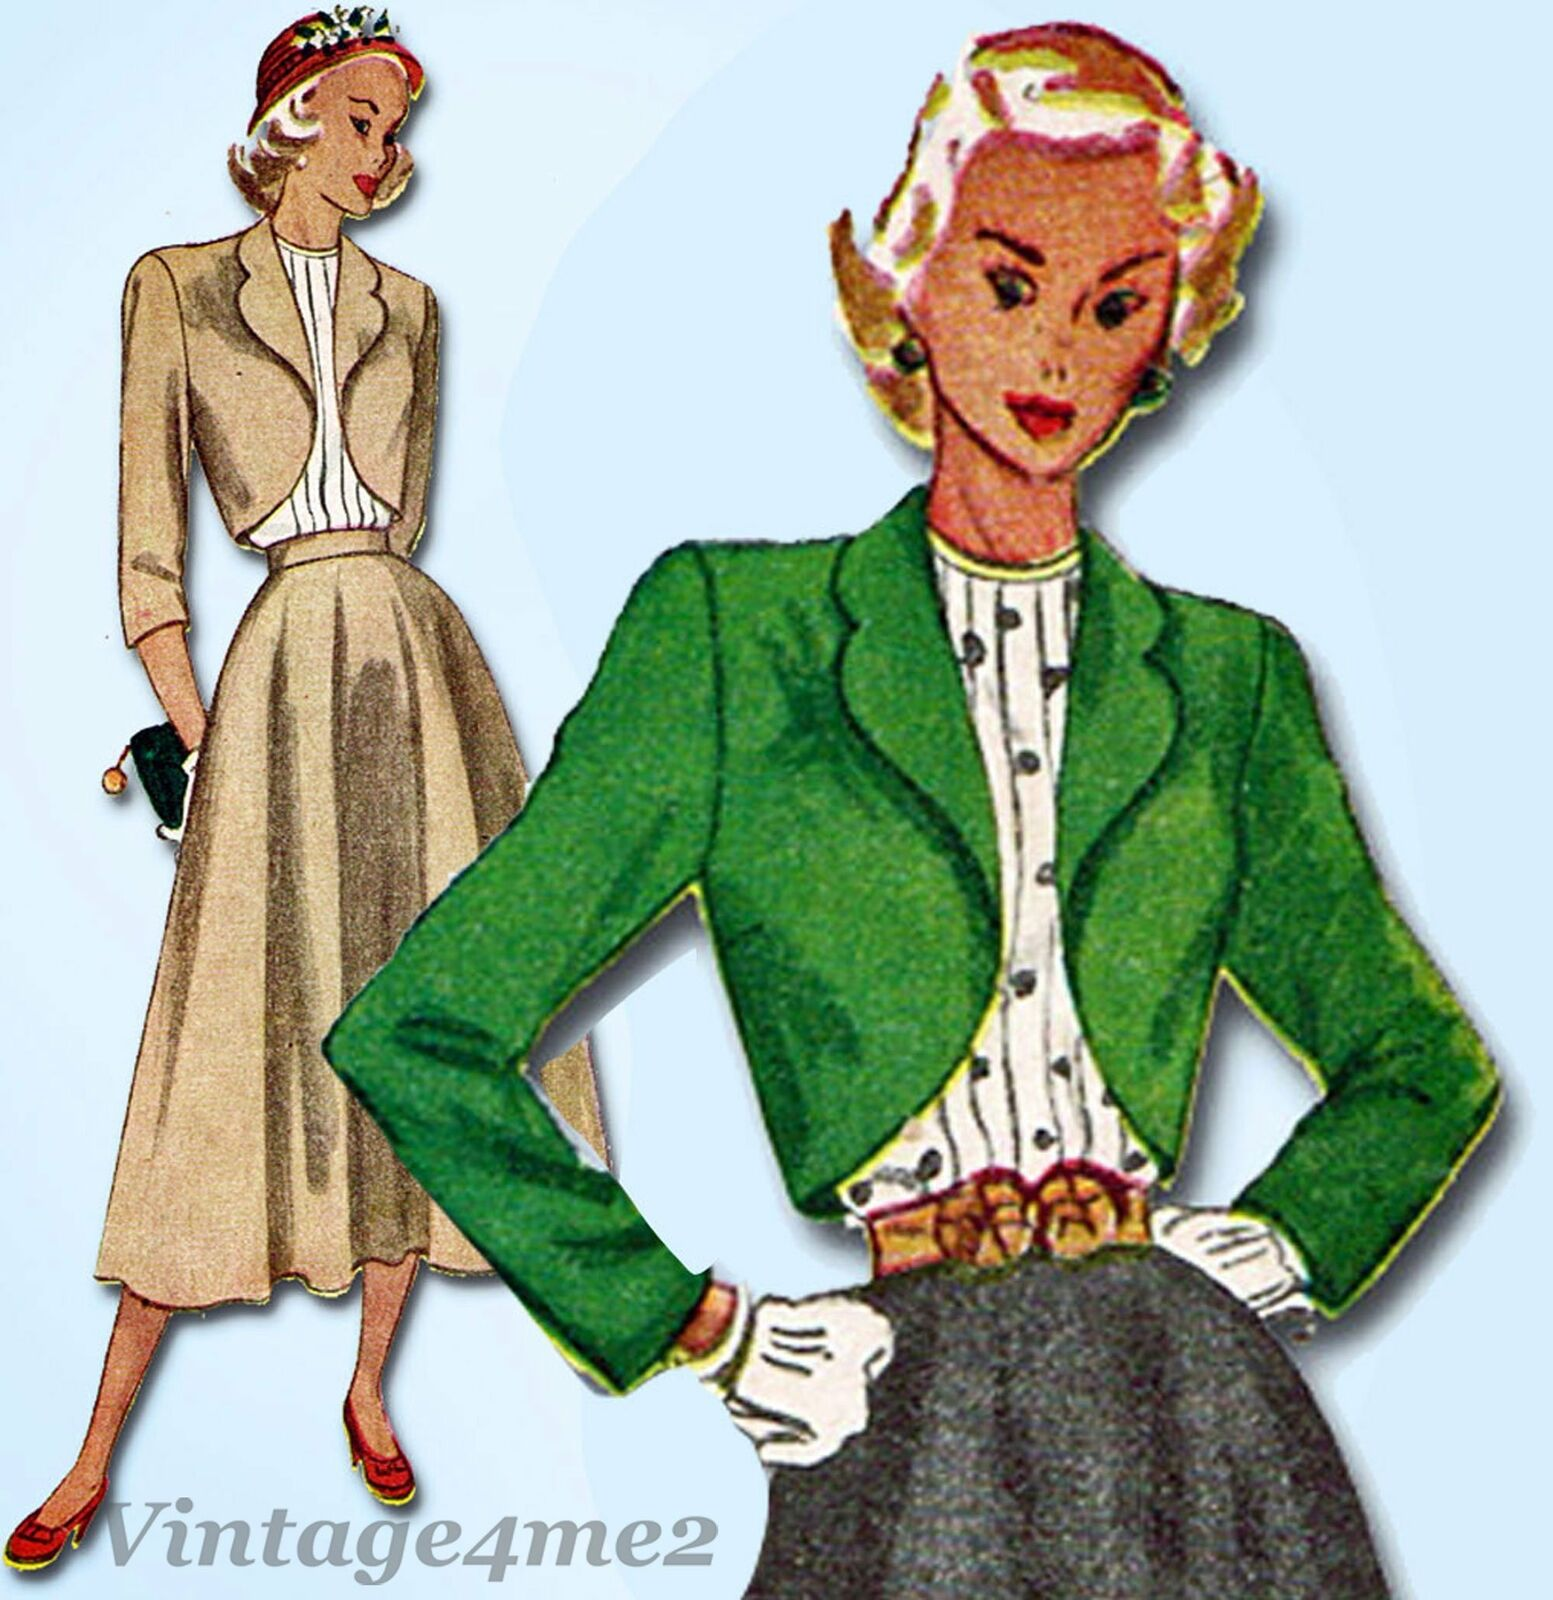 1940s Vintage Simplicity Sewing Pattern 2372 Misses Suit and Tucked Blouse 31B 3